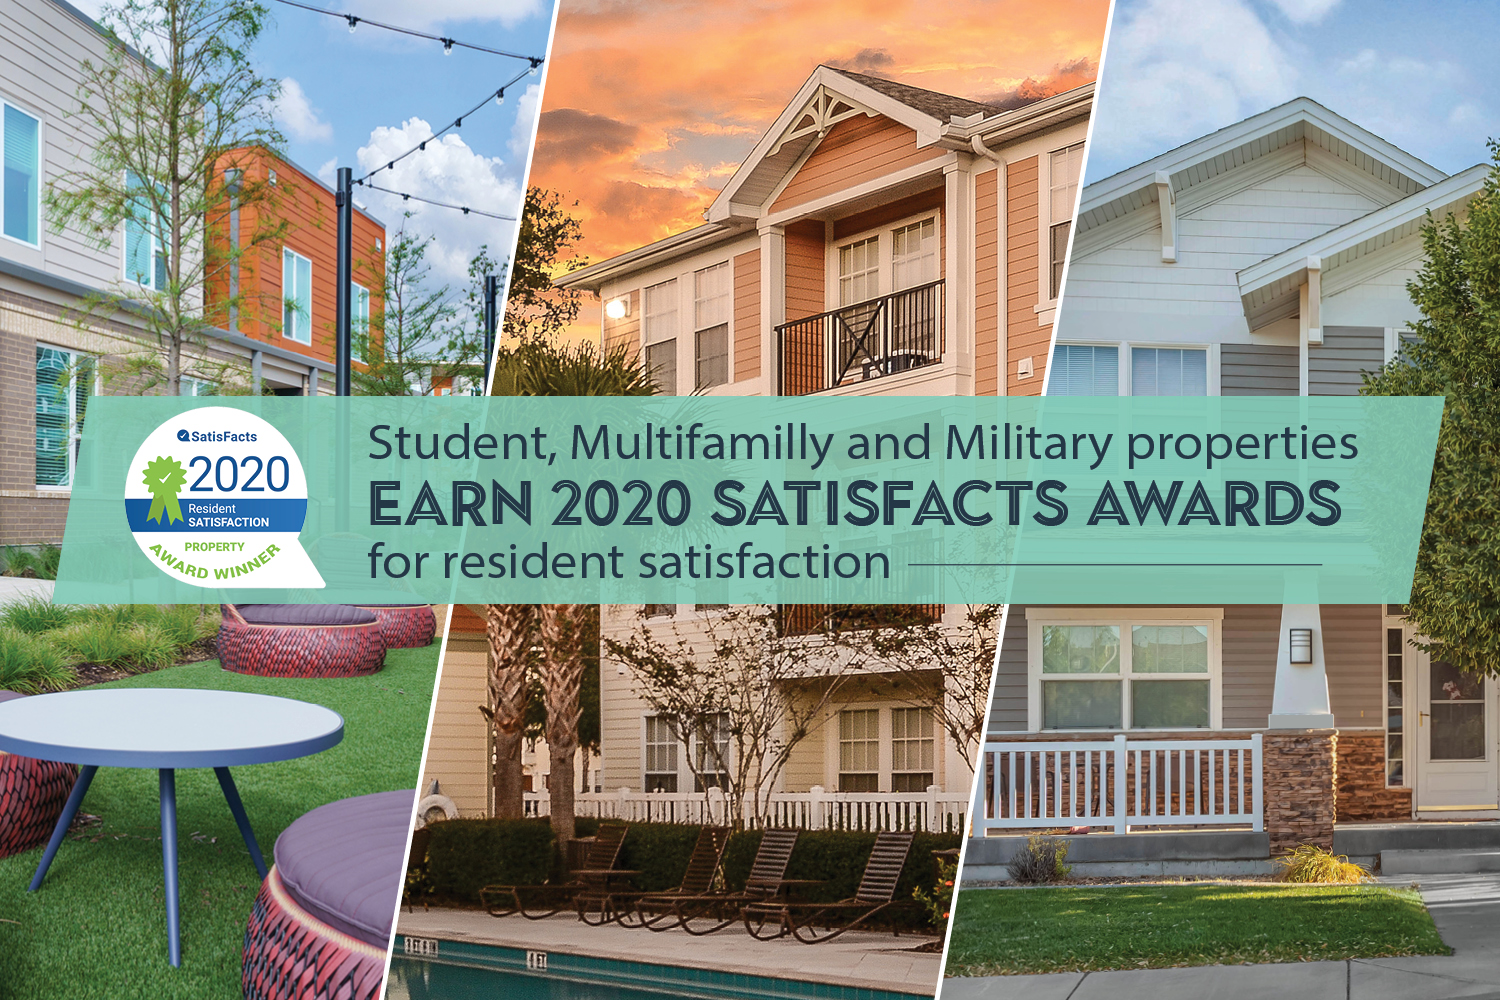 Student, Multifamily and Military properties earn 2020 SatisFacts Awards for resident satisfaction